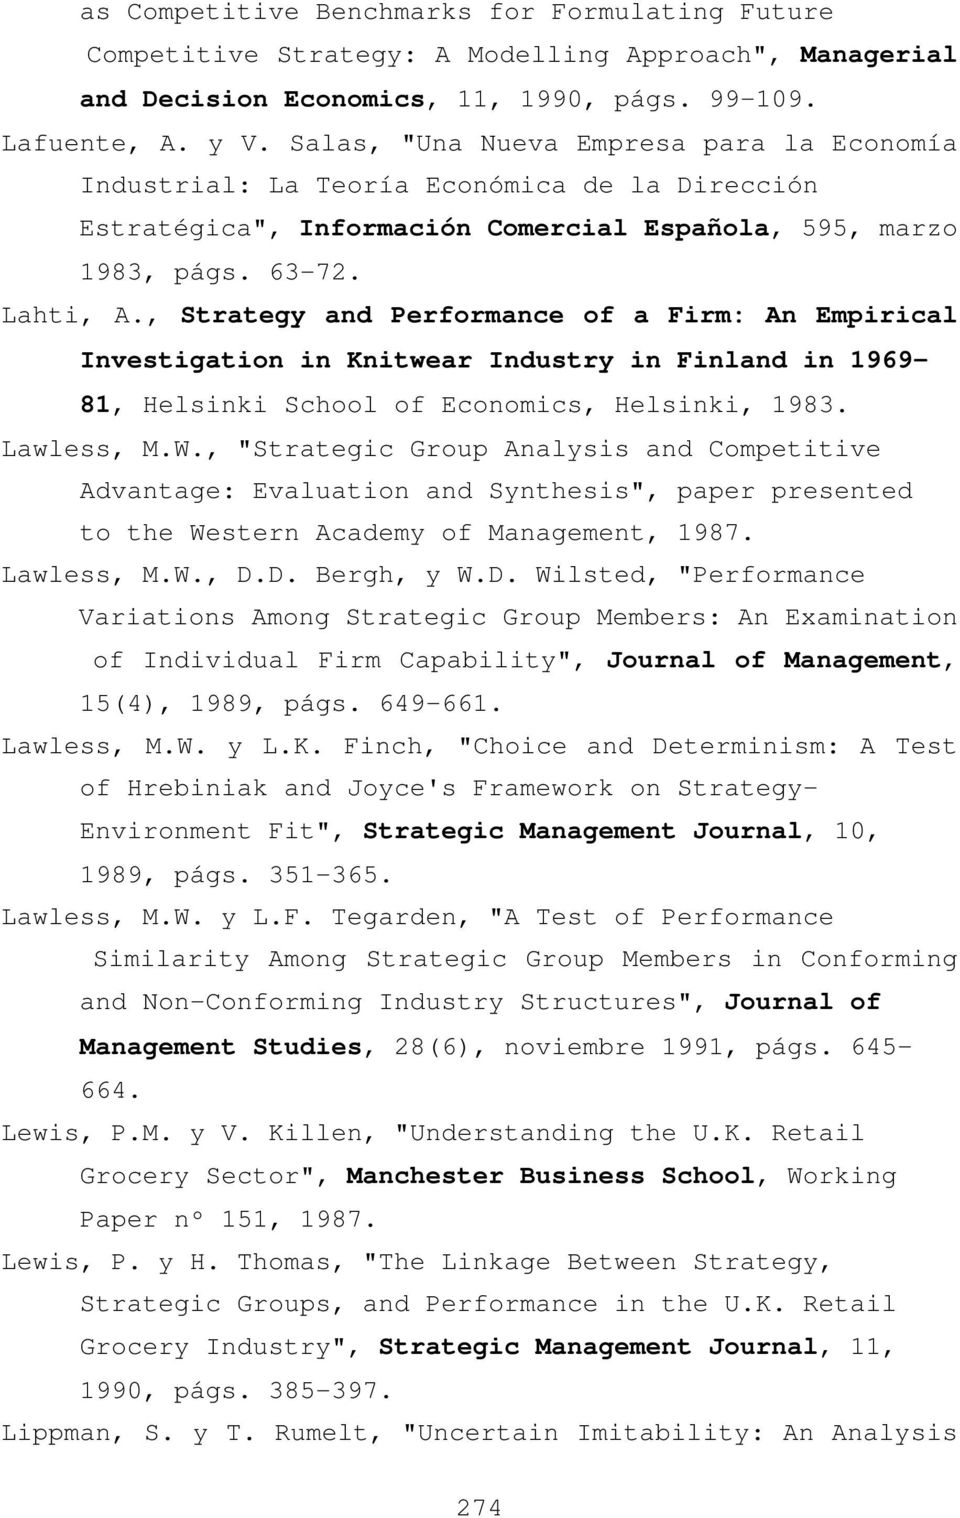 , Strategy and Performance of a Firm: An Empirical Investigation in Knitwear Industry in Finland in 1969-81, Helsinki School of Economics, Helsinki, 1983. Lawless, M.W.